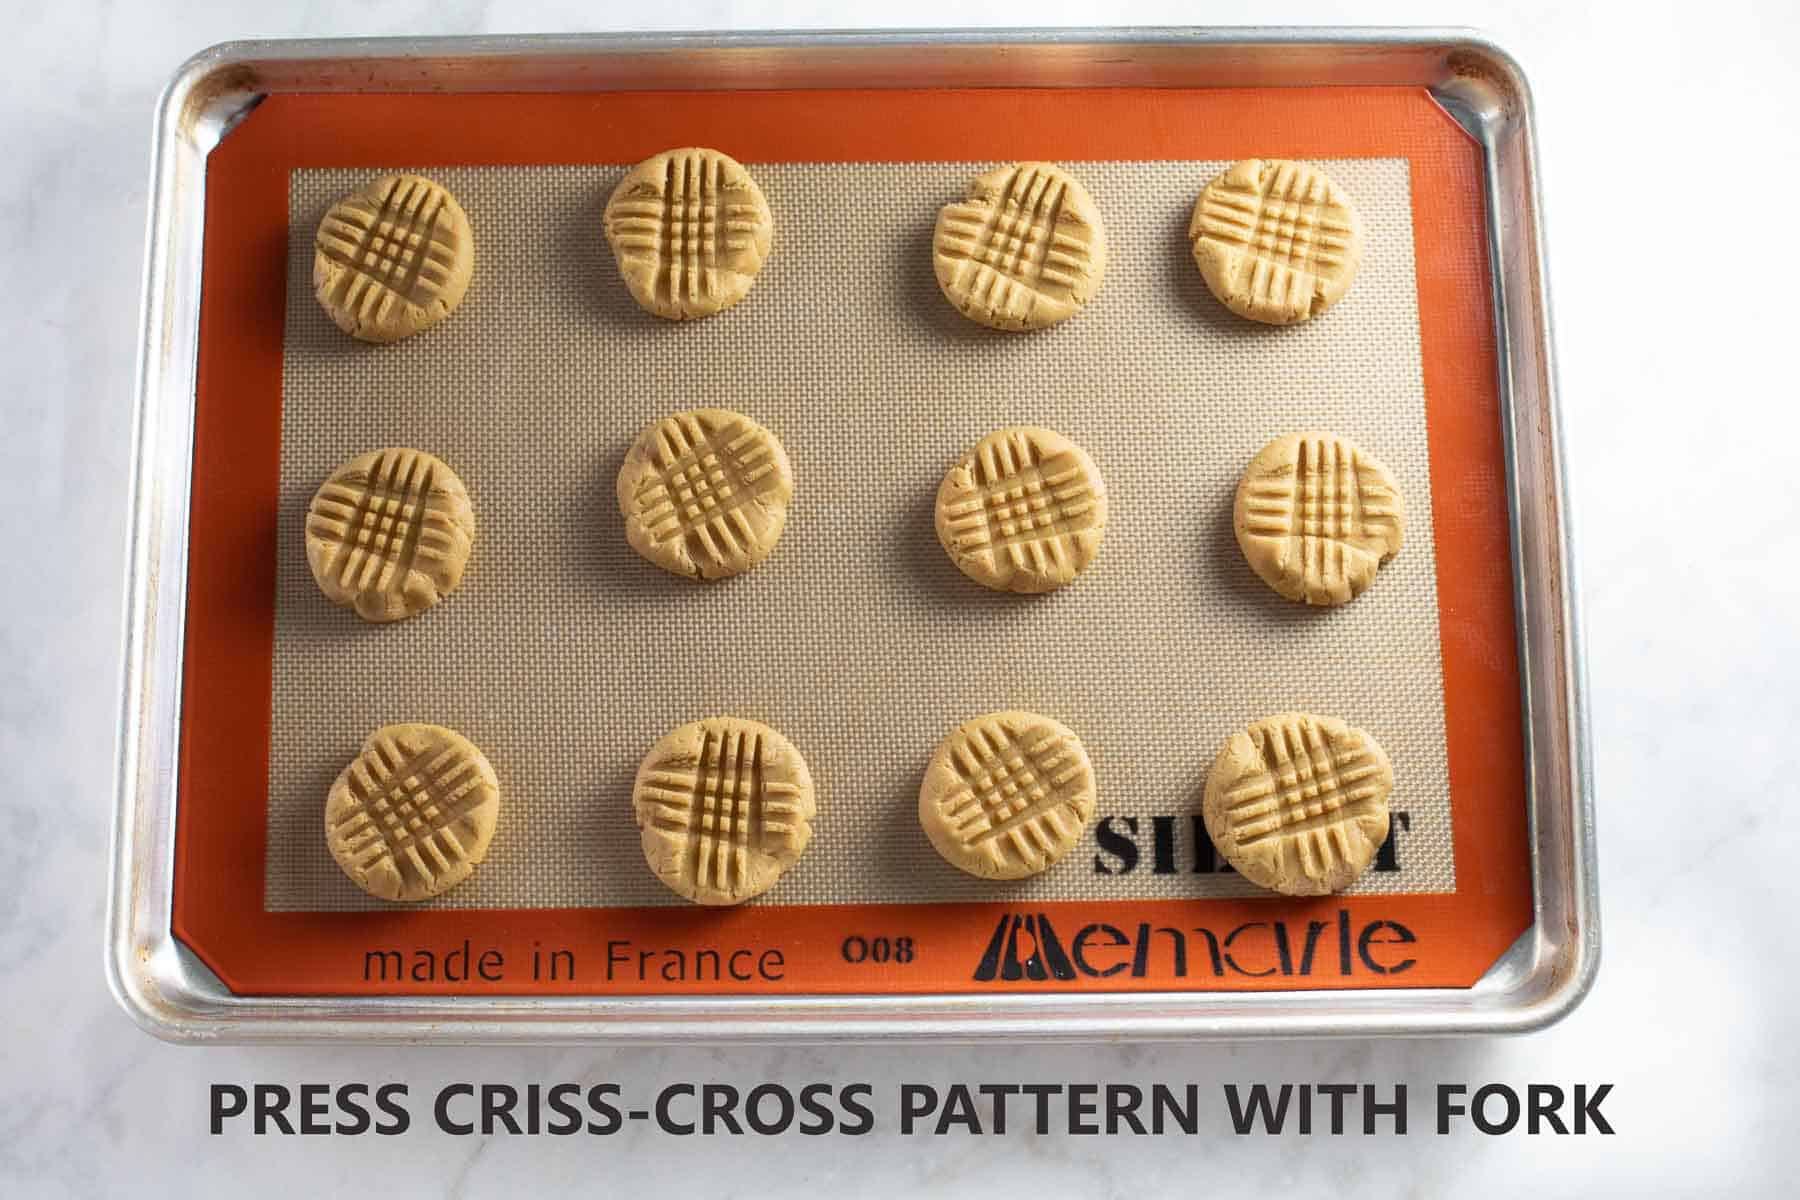 cookies on baking pan with criss-cross pattern made with fork